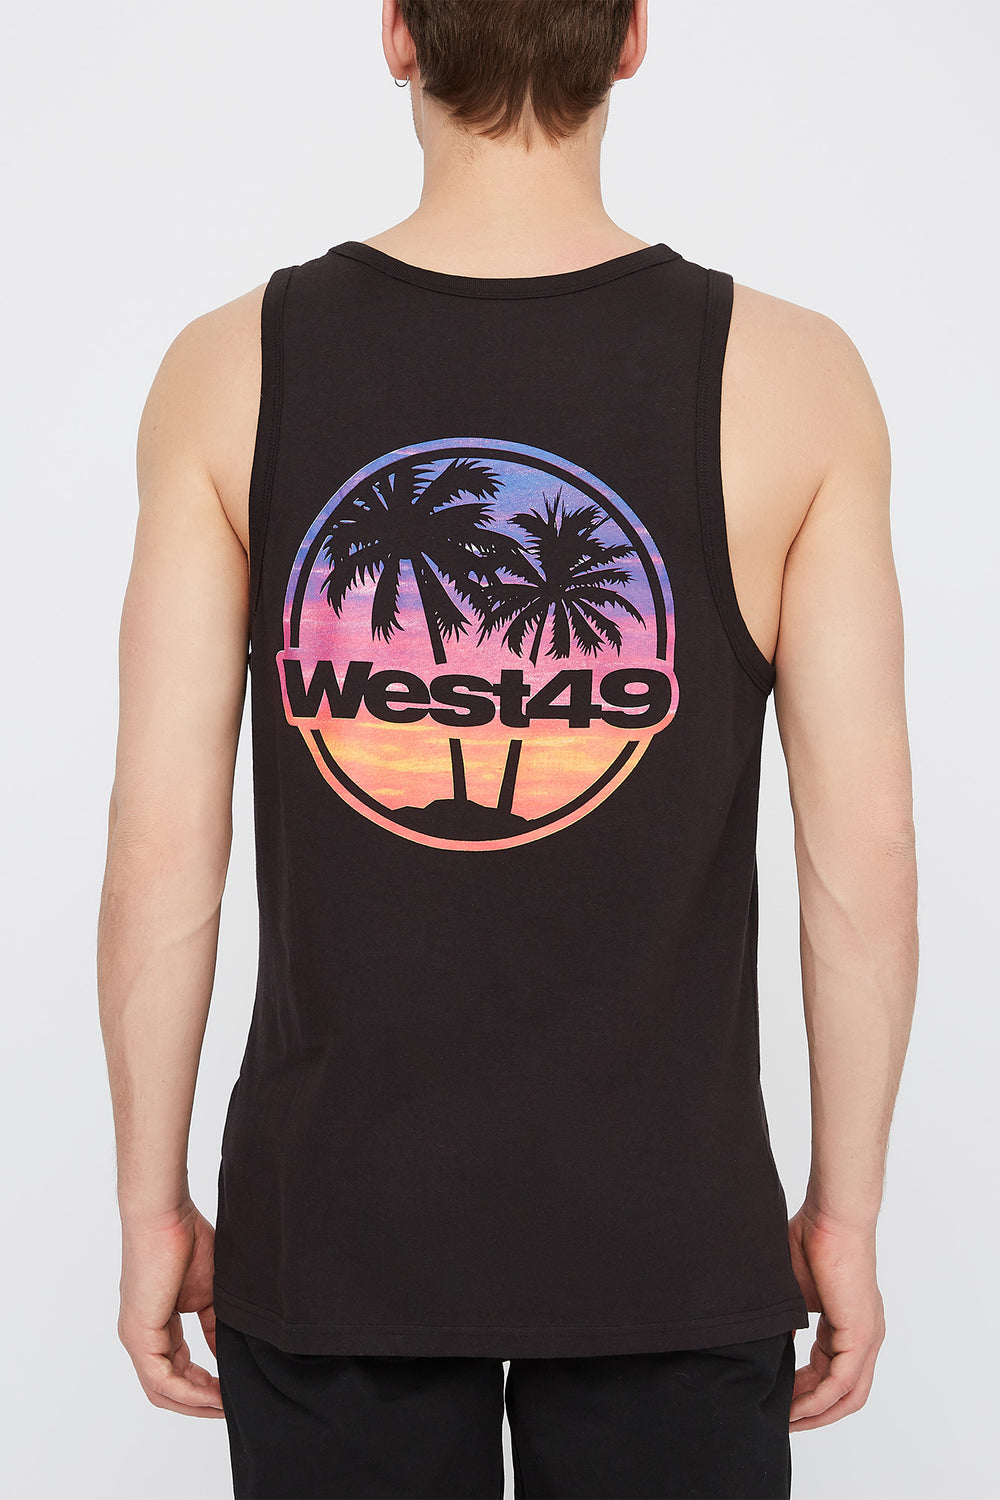 West49 Mens Sunset Logo Tank Top Black